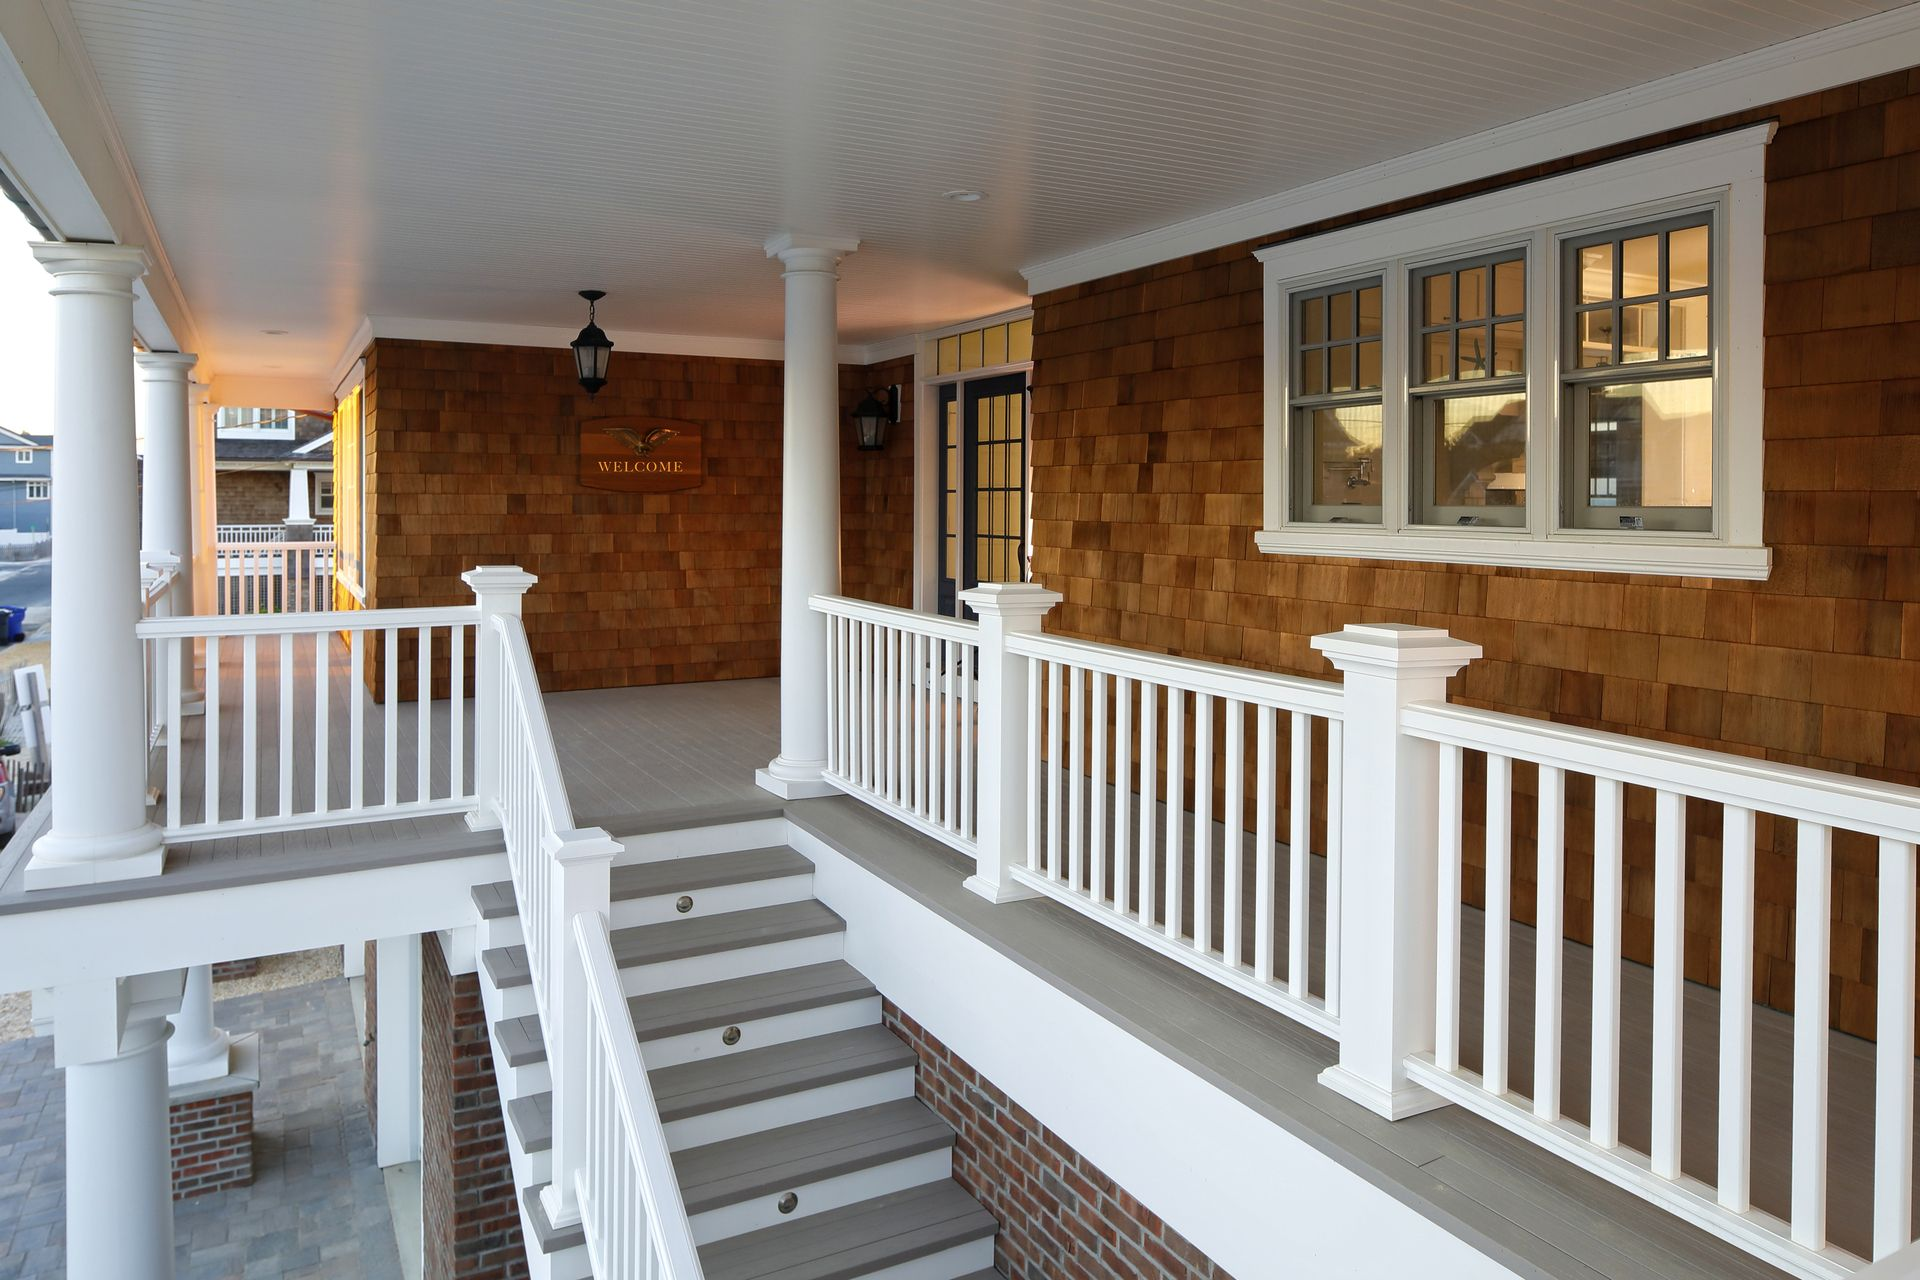 A Beautiful Porch For Your Home With All The Low Maintenance Benefits Of Our Decking Veranda